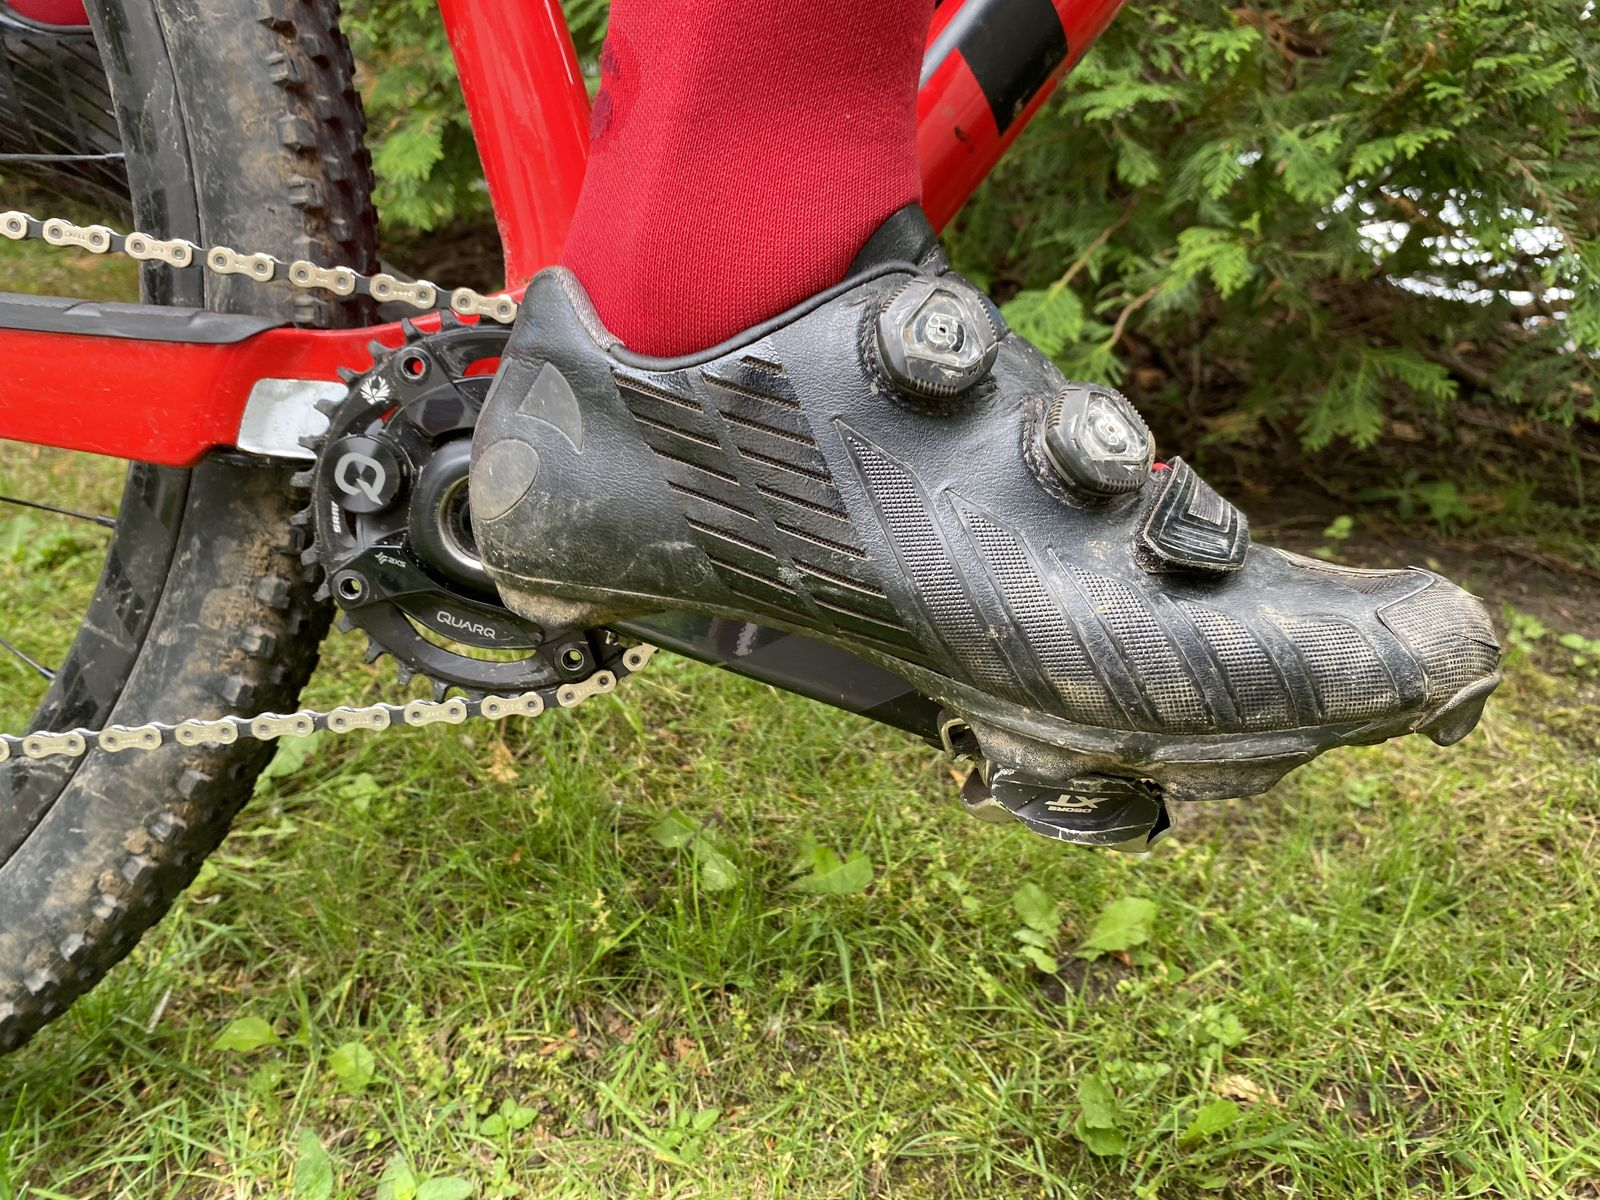 bontrager xxx MTB shoes stand the test of time